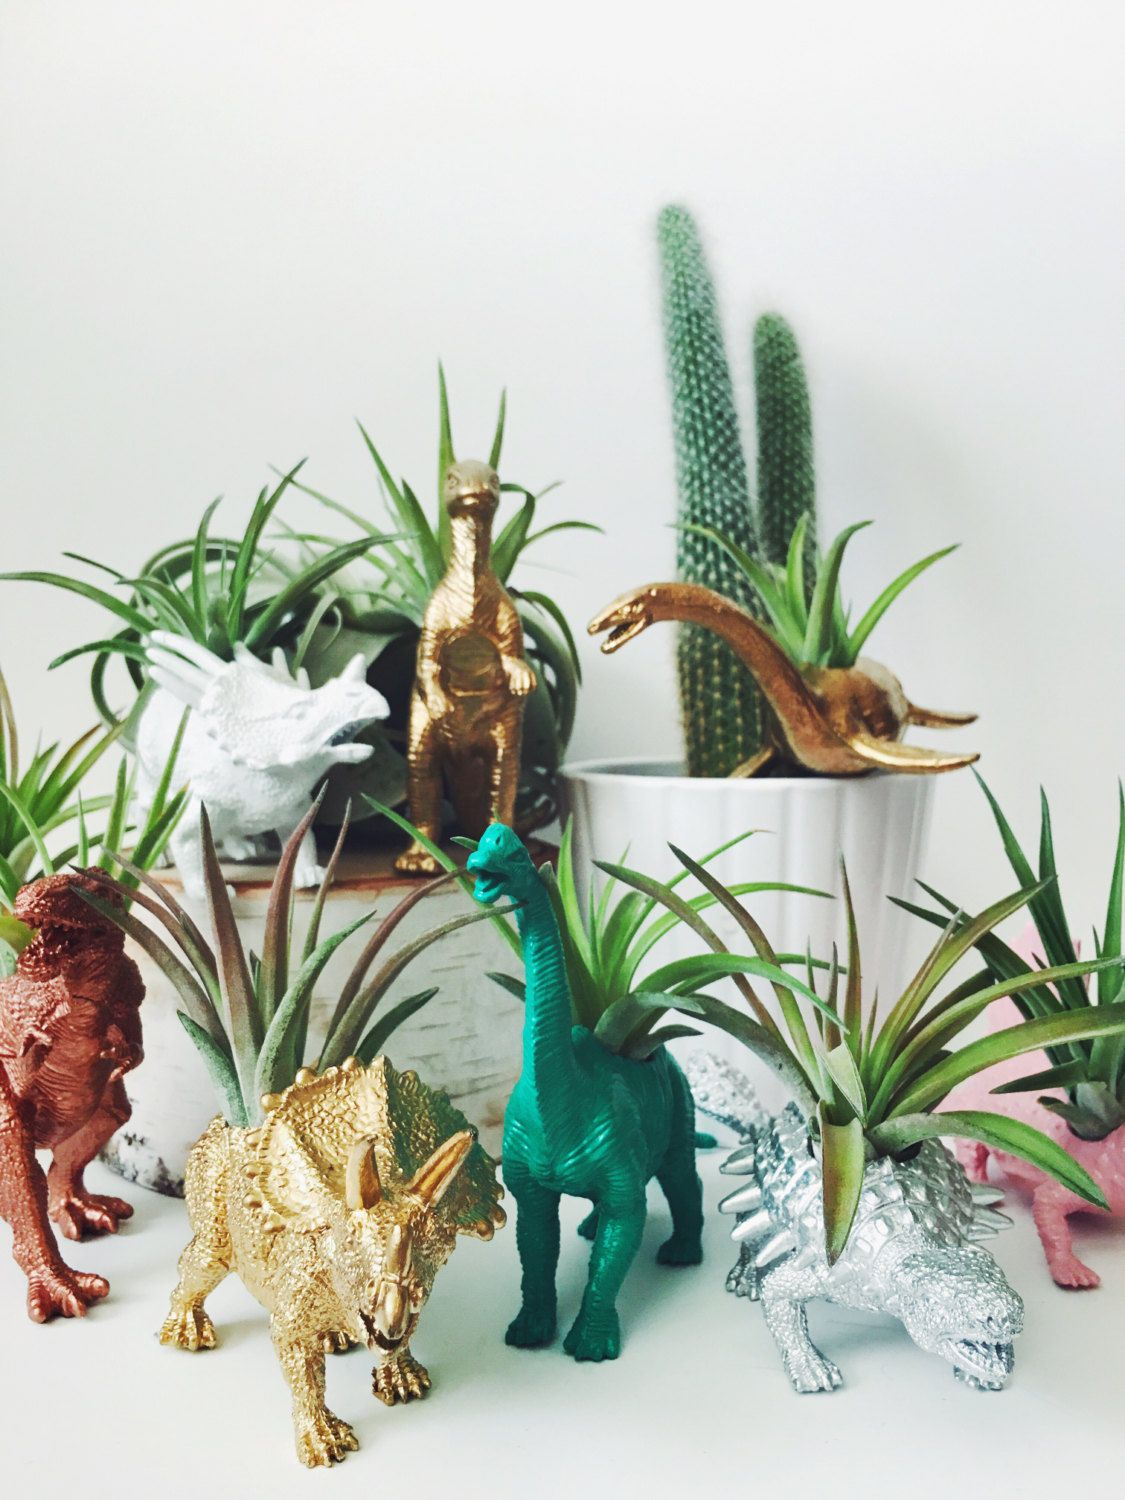 Home Decor Plants Customize Your Own Dinosaur Planter With Air Plant Home